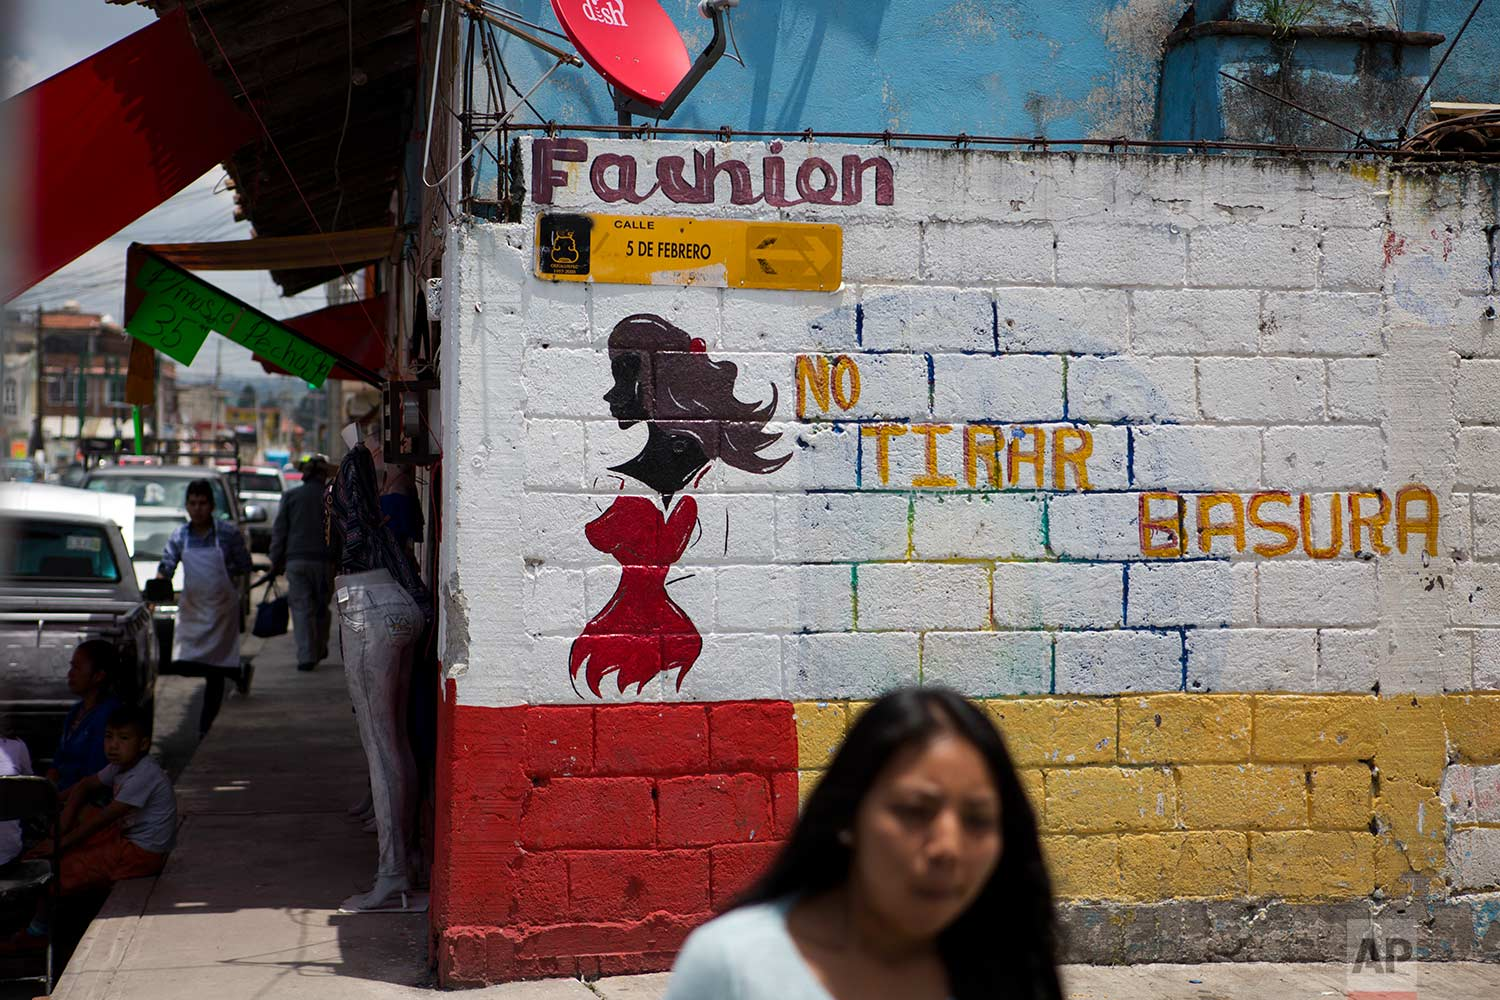 "In this Aug. 18, 2017 photo, a woman walks past the wall of a clothing store painted with the figure of a woman as advertising, next to phrase ""No dumping garbage,"" in Villa Cuauhtemoc, Mexico state. ""This problem is difficult to eradicate because it is rooted in ideas that assume that we as women are worth less than men, that we as women can be treated like trash,"" said Dilcya Garcia Espinoza de los Monteros, deputy state prosecutor for gender violence crimes, regarding femicides. (AP Photo/Rebecca Blackwell)"